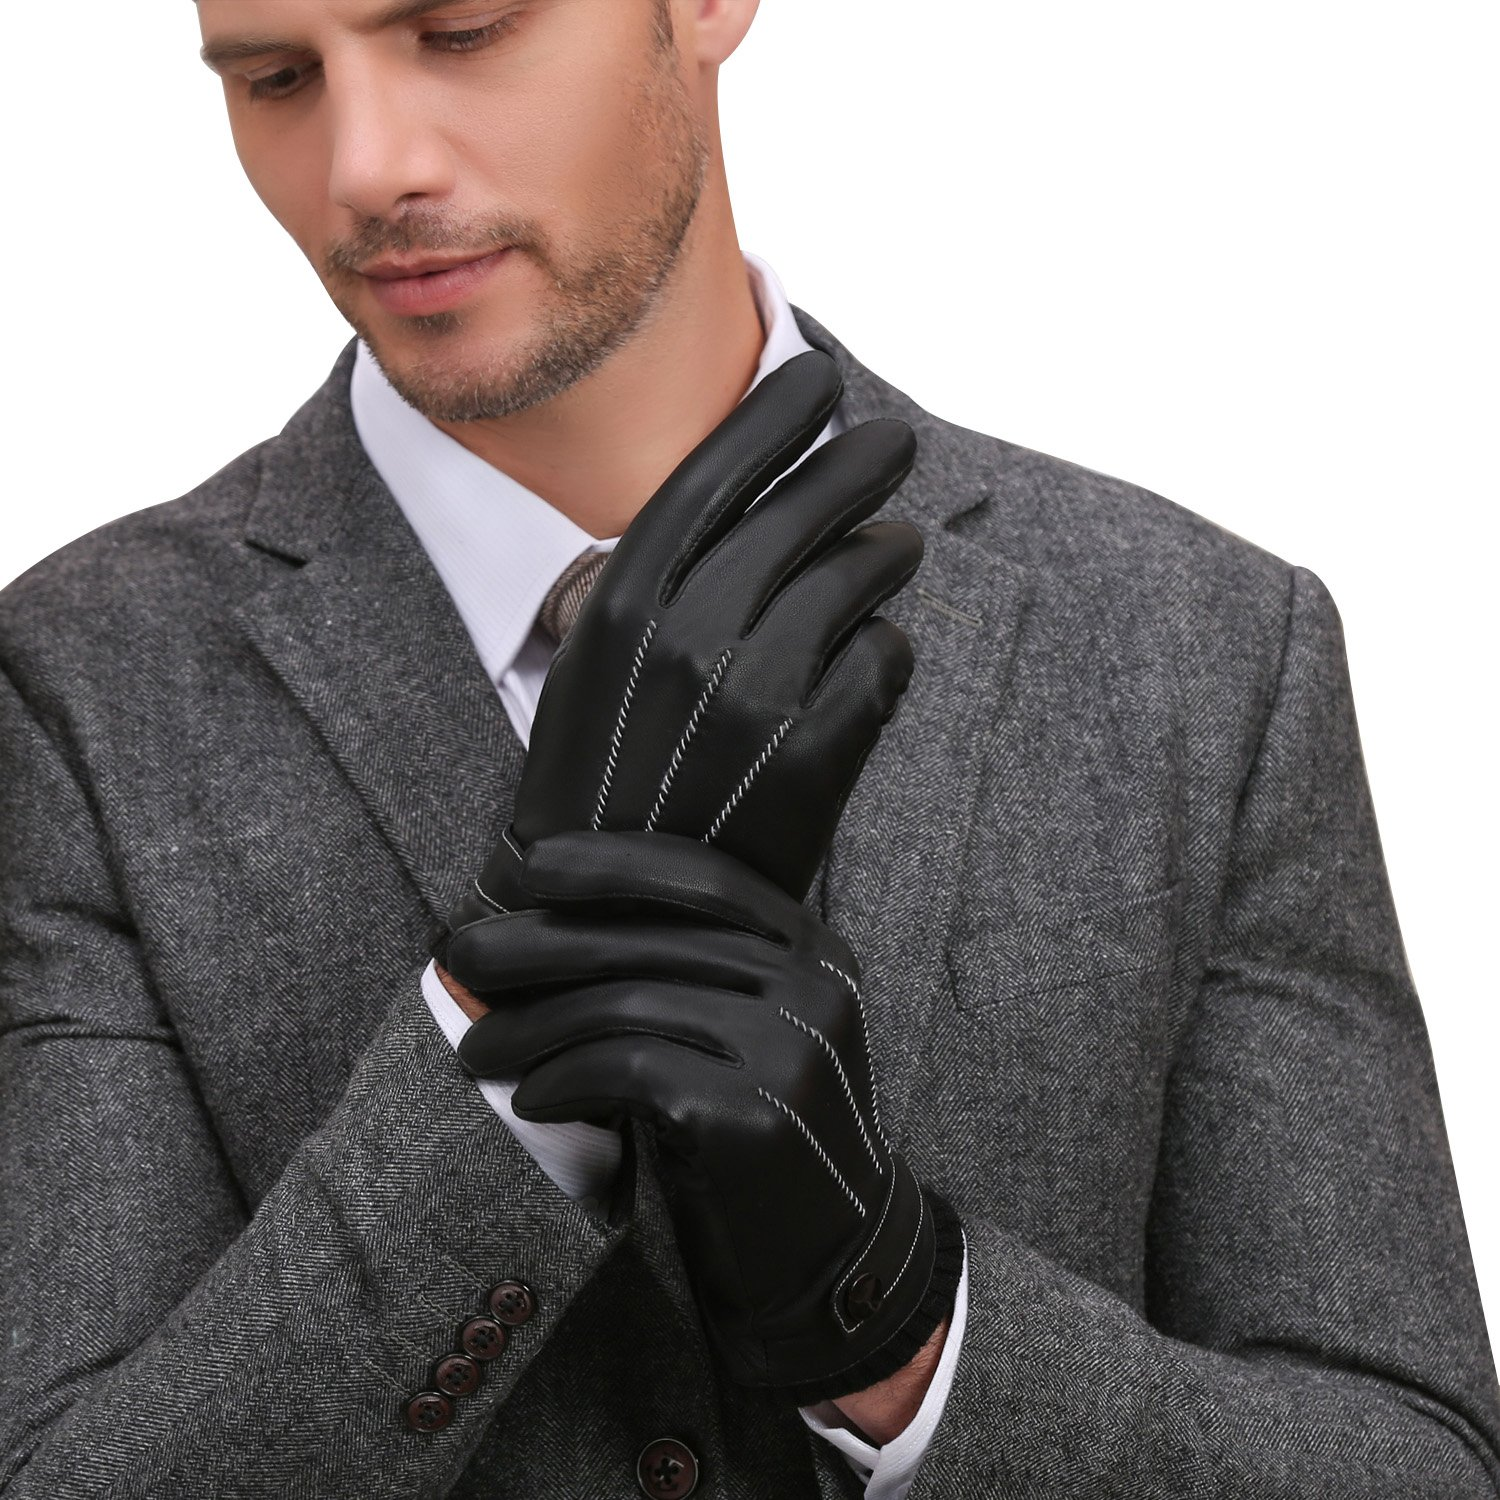 Mens gloves fashion - Gsg Mens Luxury Winter Spain Nappa Leather Gloves Hi Tech Touchscreen Texting Motorcycle Gloves Wool Faux Fur Lining Nice Birthday Christmas Gifts At